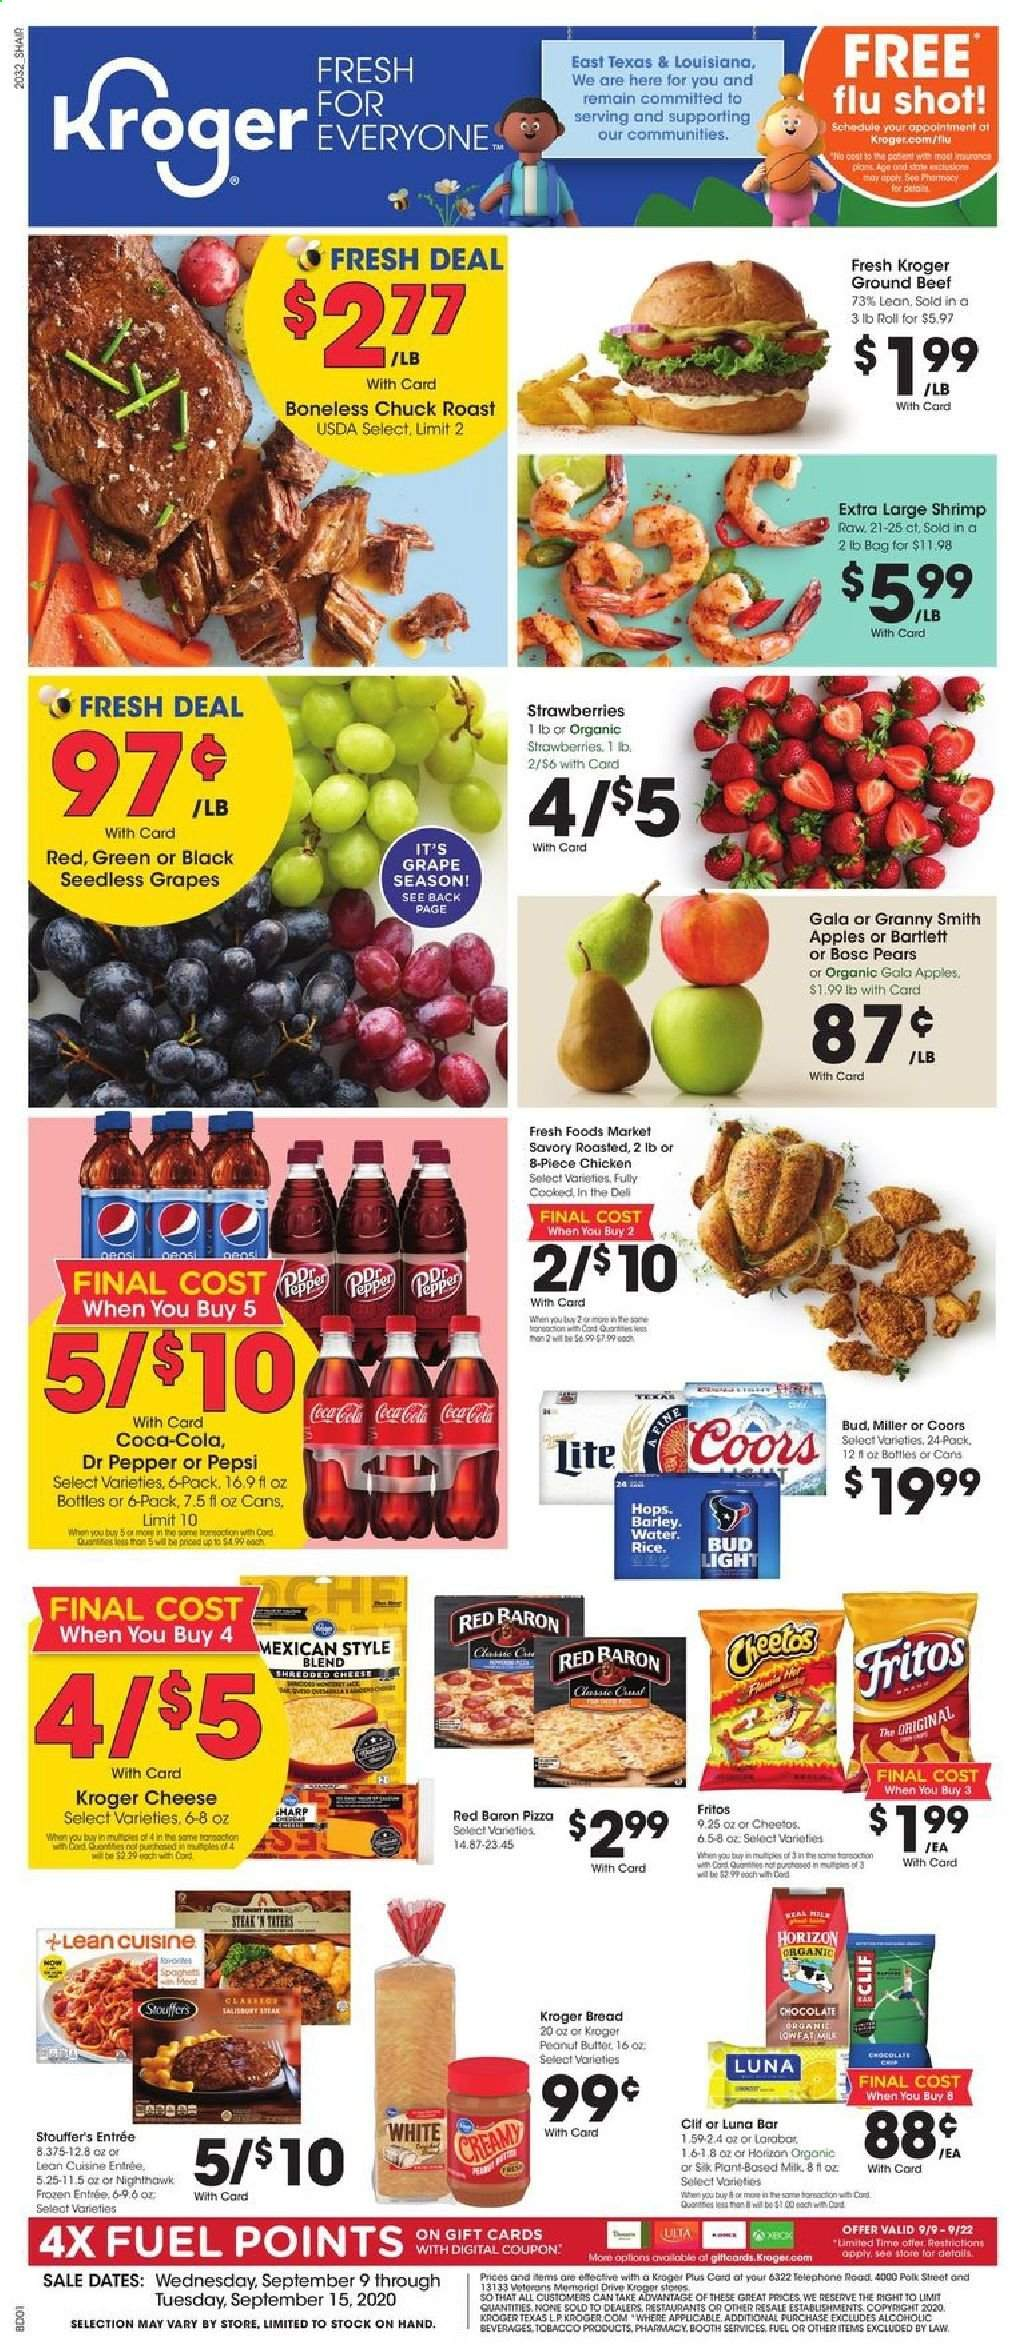 Kroger Flyer - 09.09.2020 - 09.15.2020 - Sales products - Bud Light, Coors, Gala, grapes, seedless grapes, strawberries, pears, bread, cod, shrimps, pizza, cheese, chocolate, Cheetos, barley, Fritos, rice, pepper, Coca-Cola, Pepsi, Dr. Pepper, water, chicken, beef meat, steak, ground beef, Frozen, fuel. Page 1.